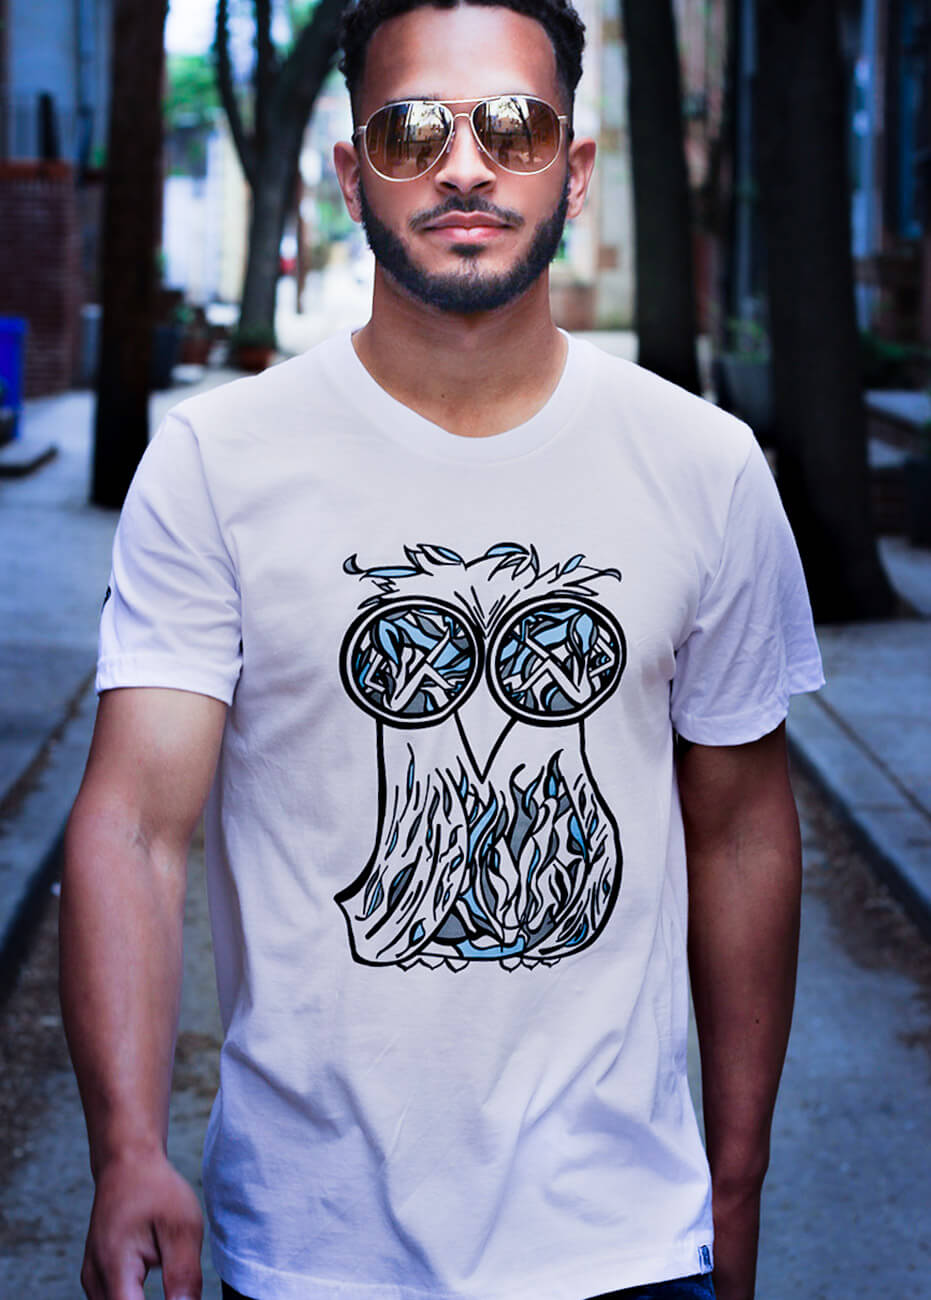 Wise Eyes T-Shirt